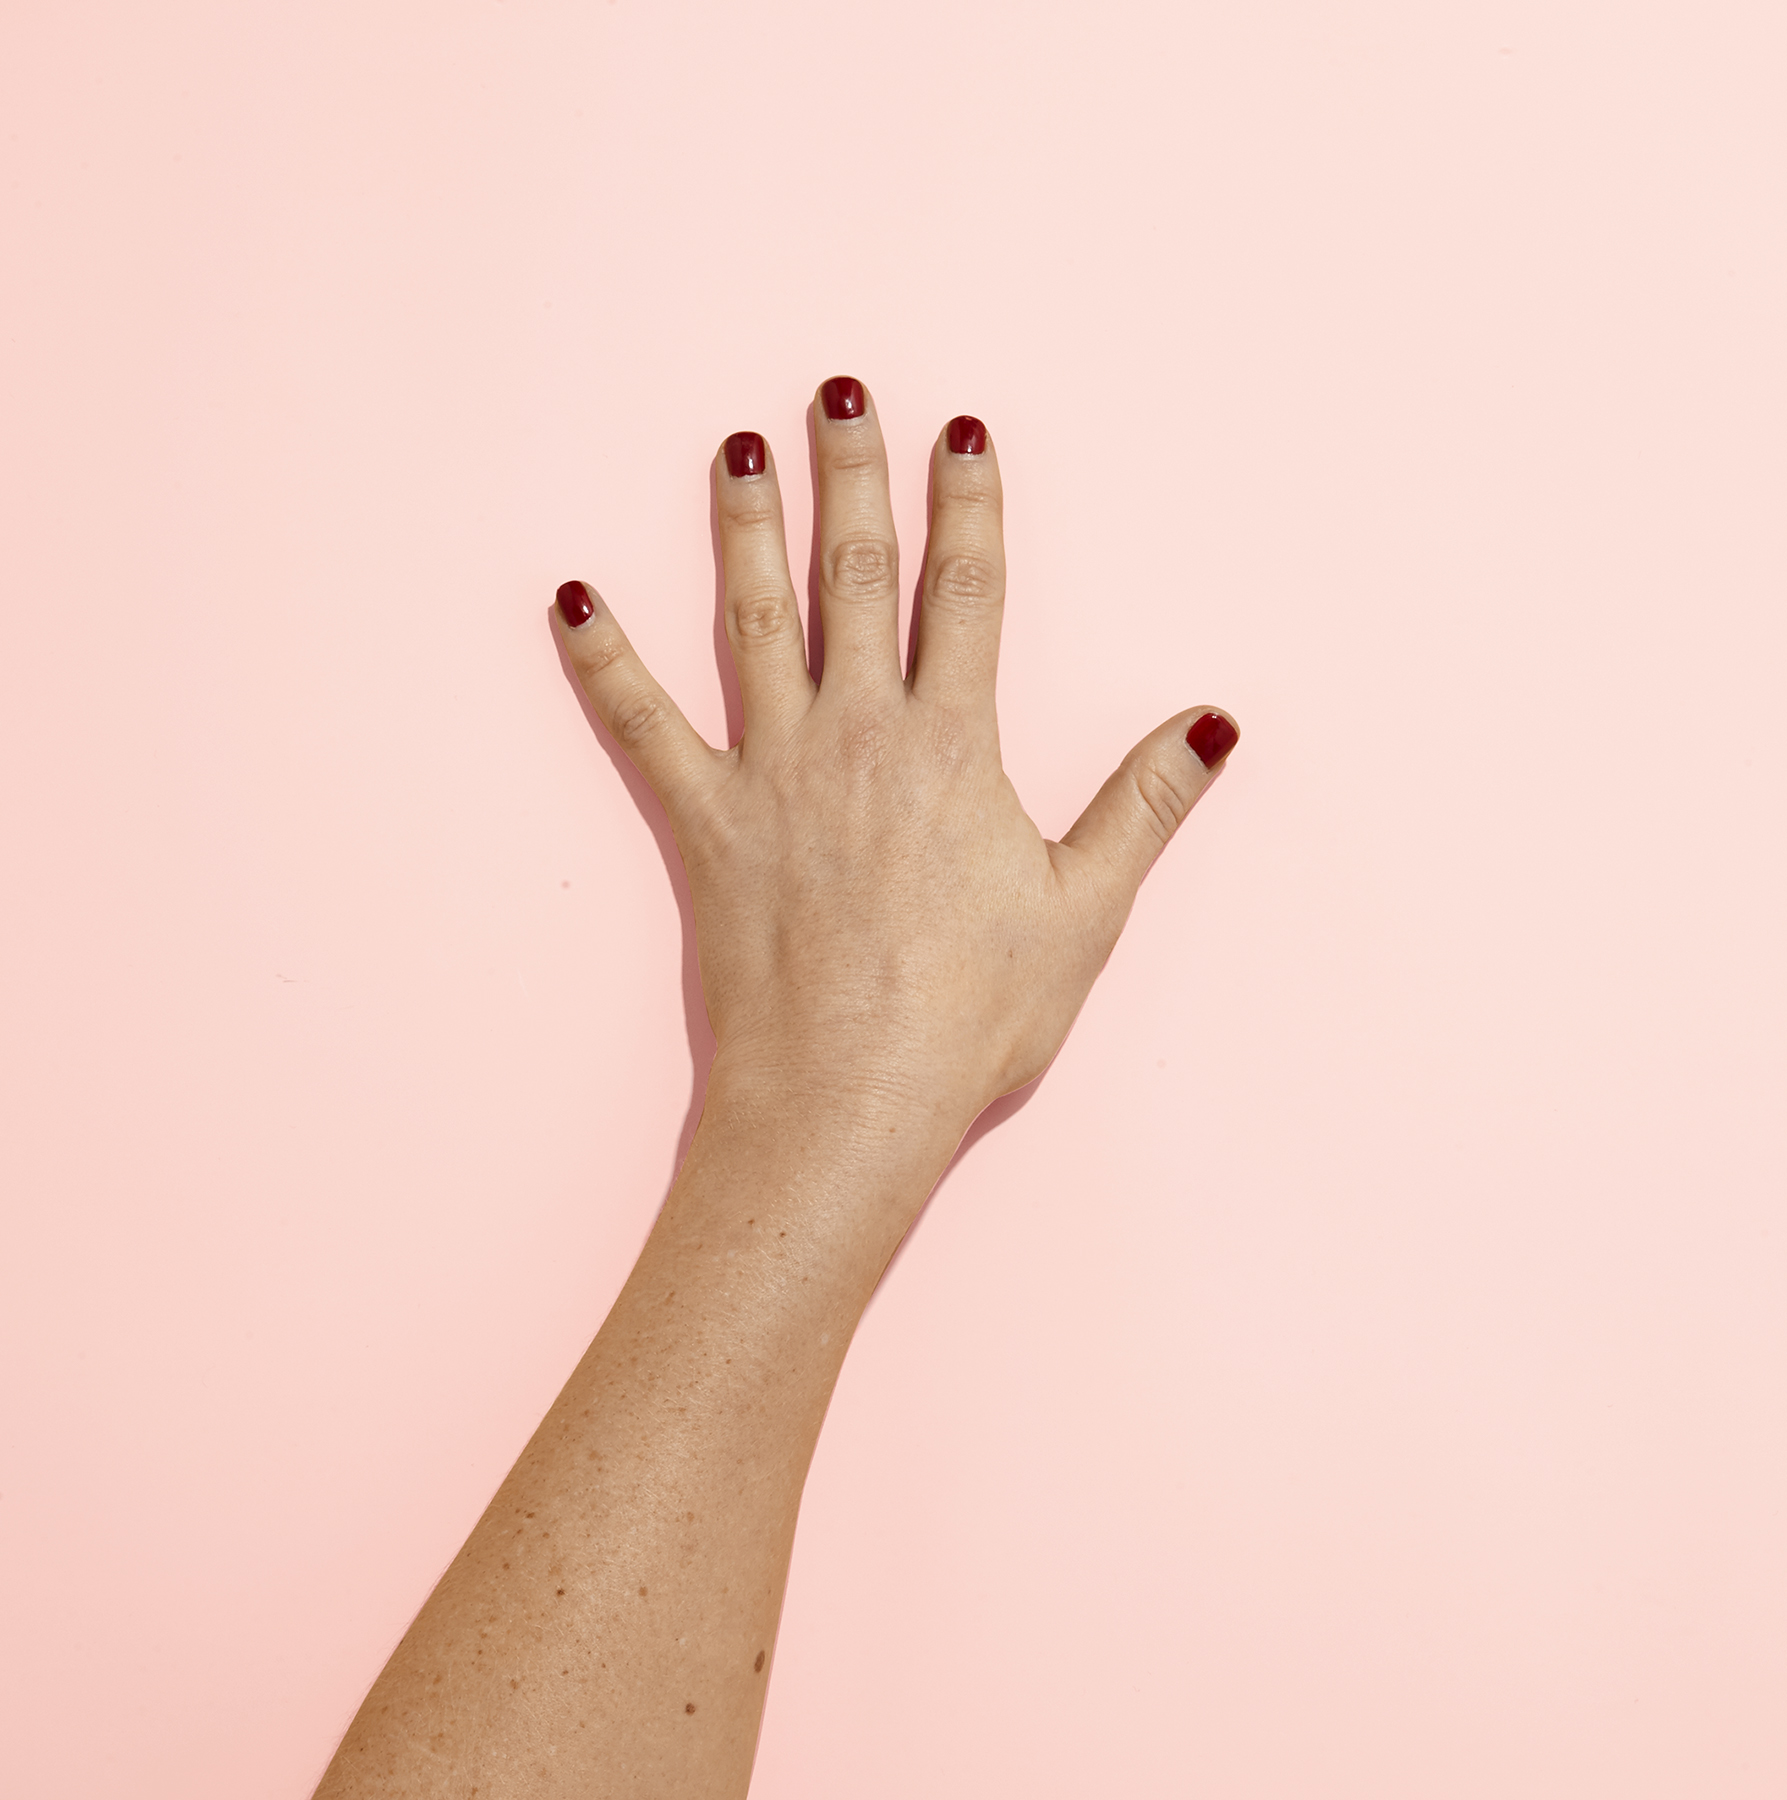 Hand with red nail polish